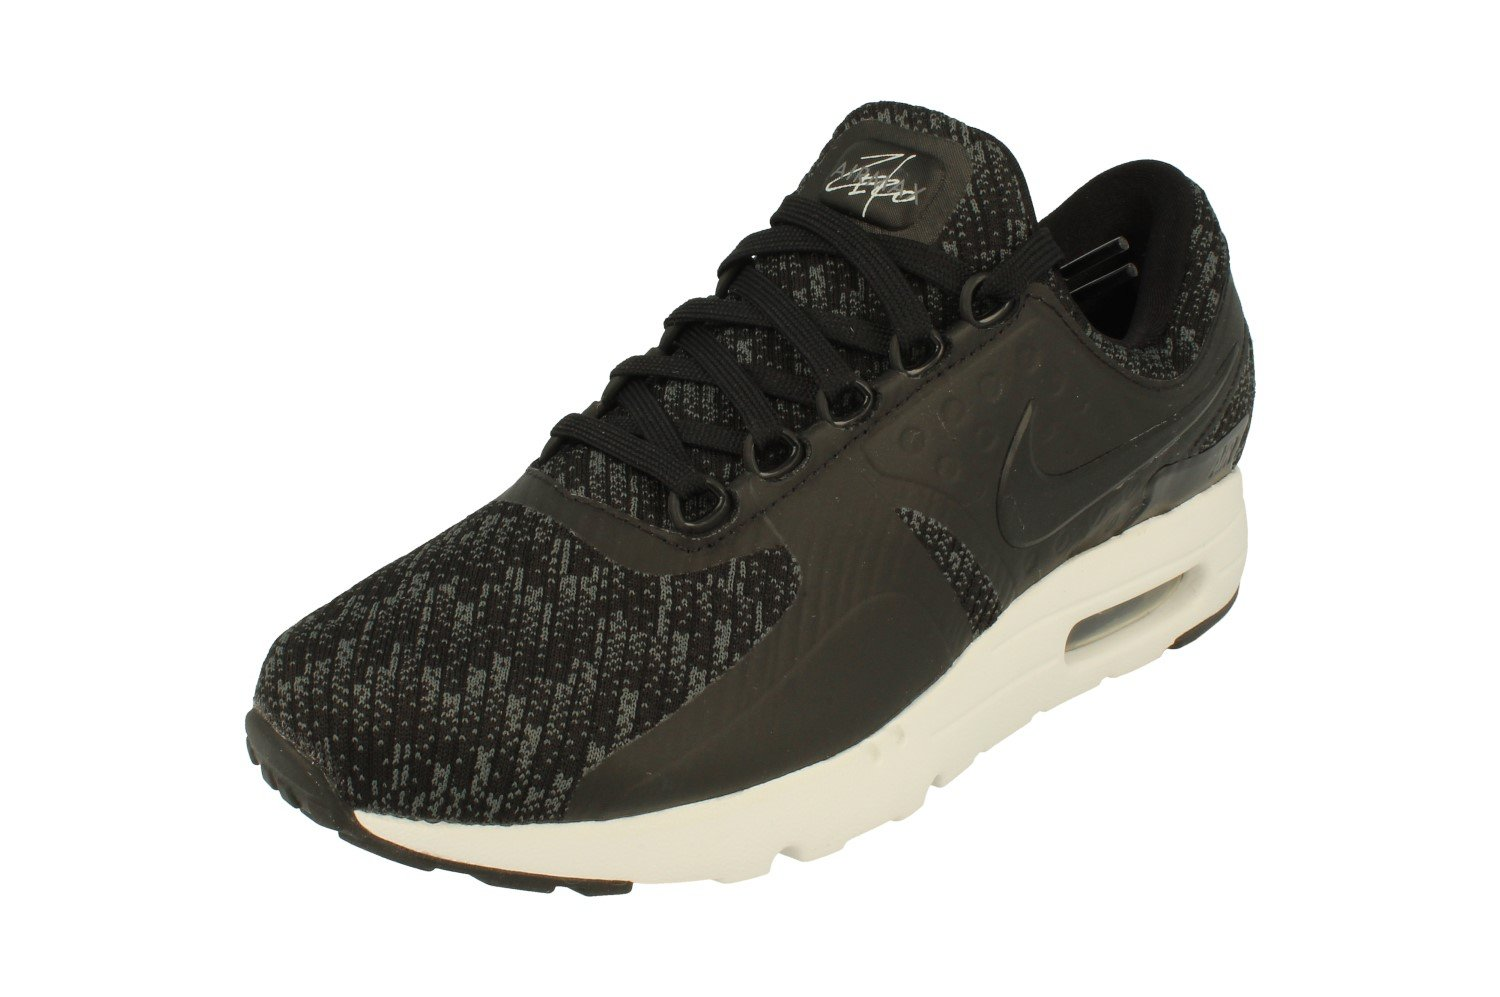 best sneakers 88a89 a18e0 Galleon - Nike Air Max Zero SE Mens Running Trainers 918232 Sneakers Shoes  (UK 6 US 6.5 EU 39, Black Cool Grey Dark Grey 005)